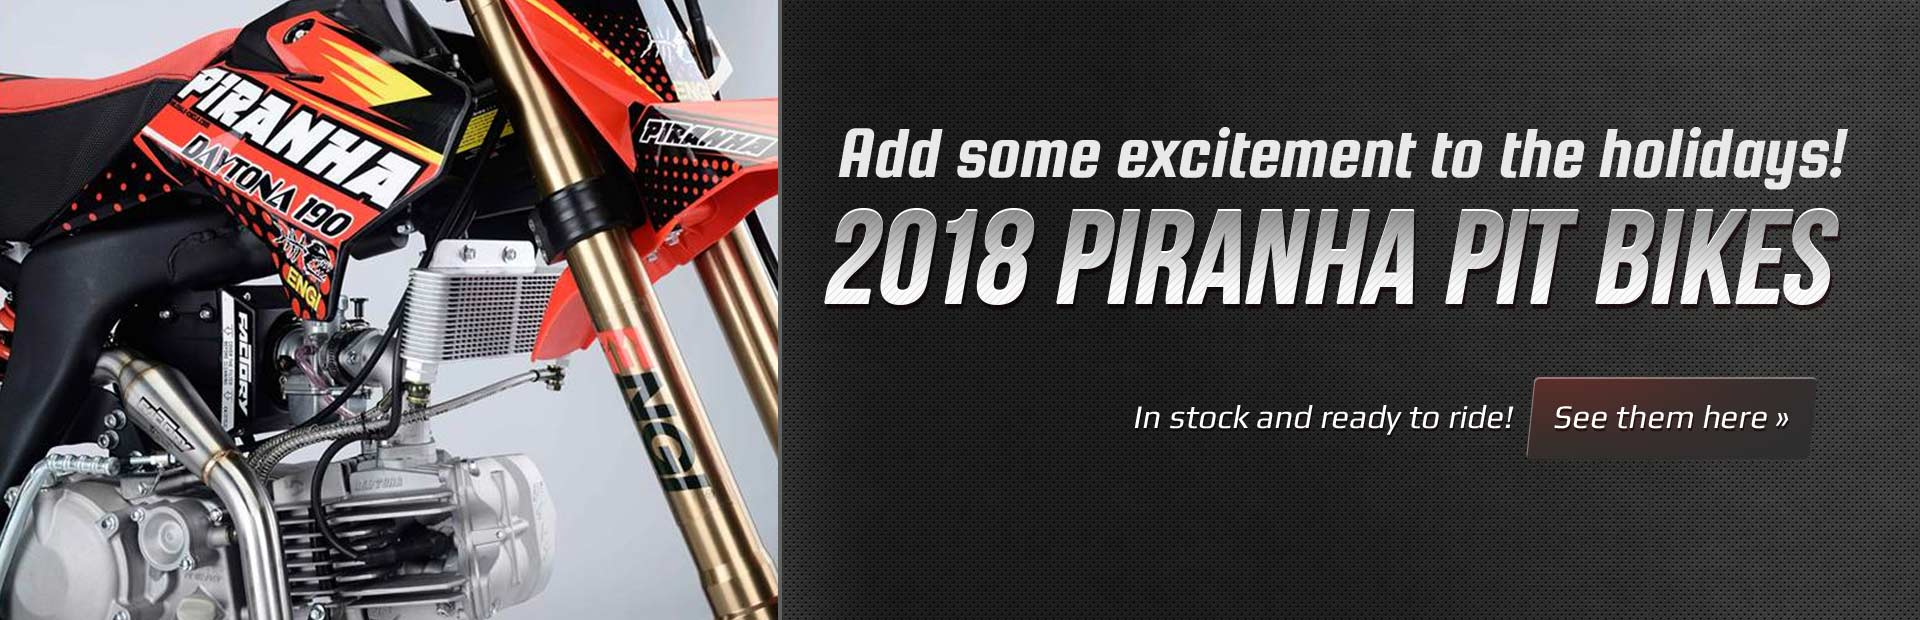 2018 Piranha Pit Bikes: Click here to view the models.